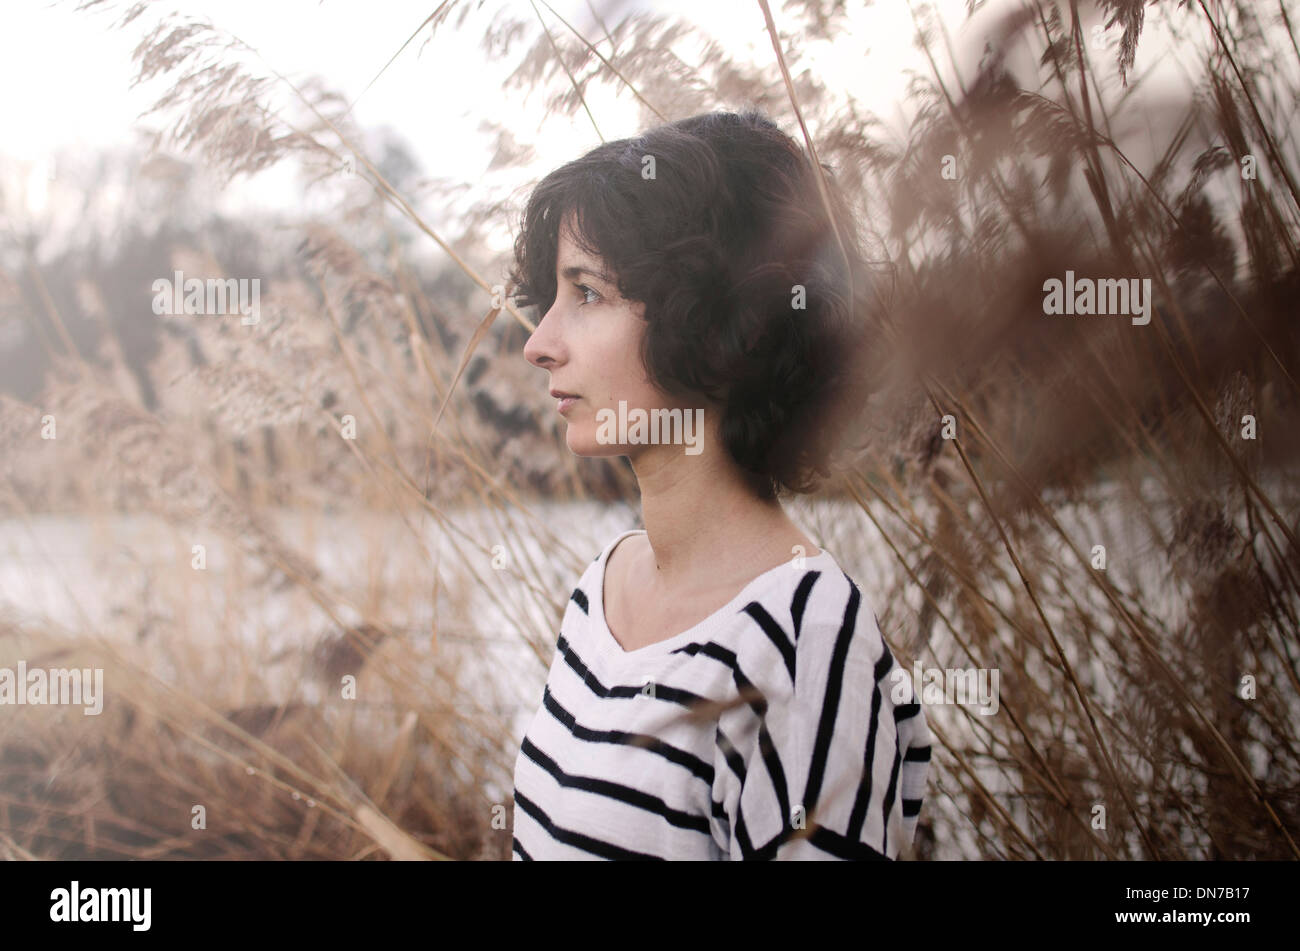 Portrait of a woman between tall grasses in winter - Stock Image